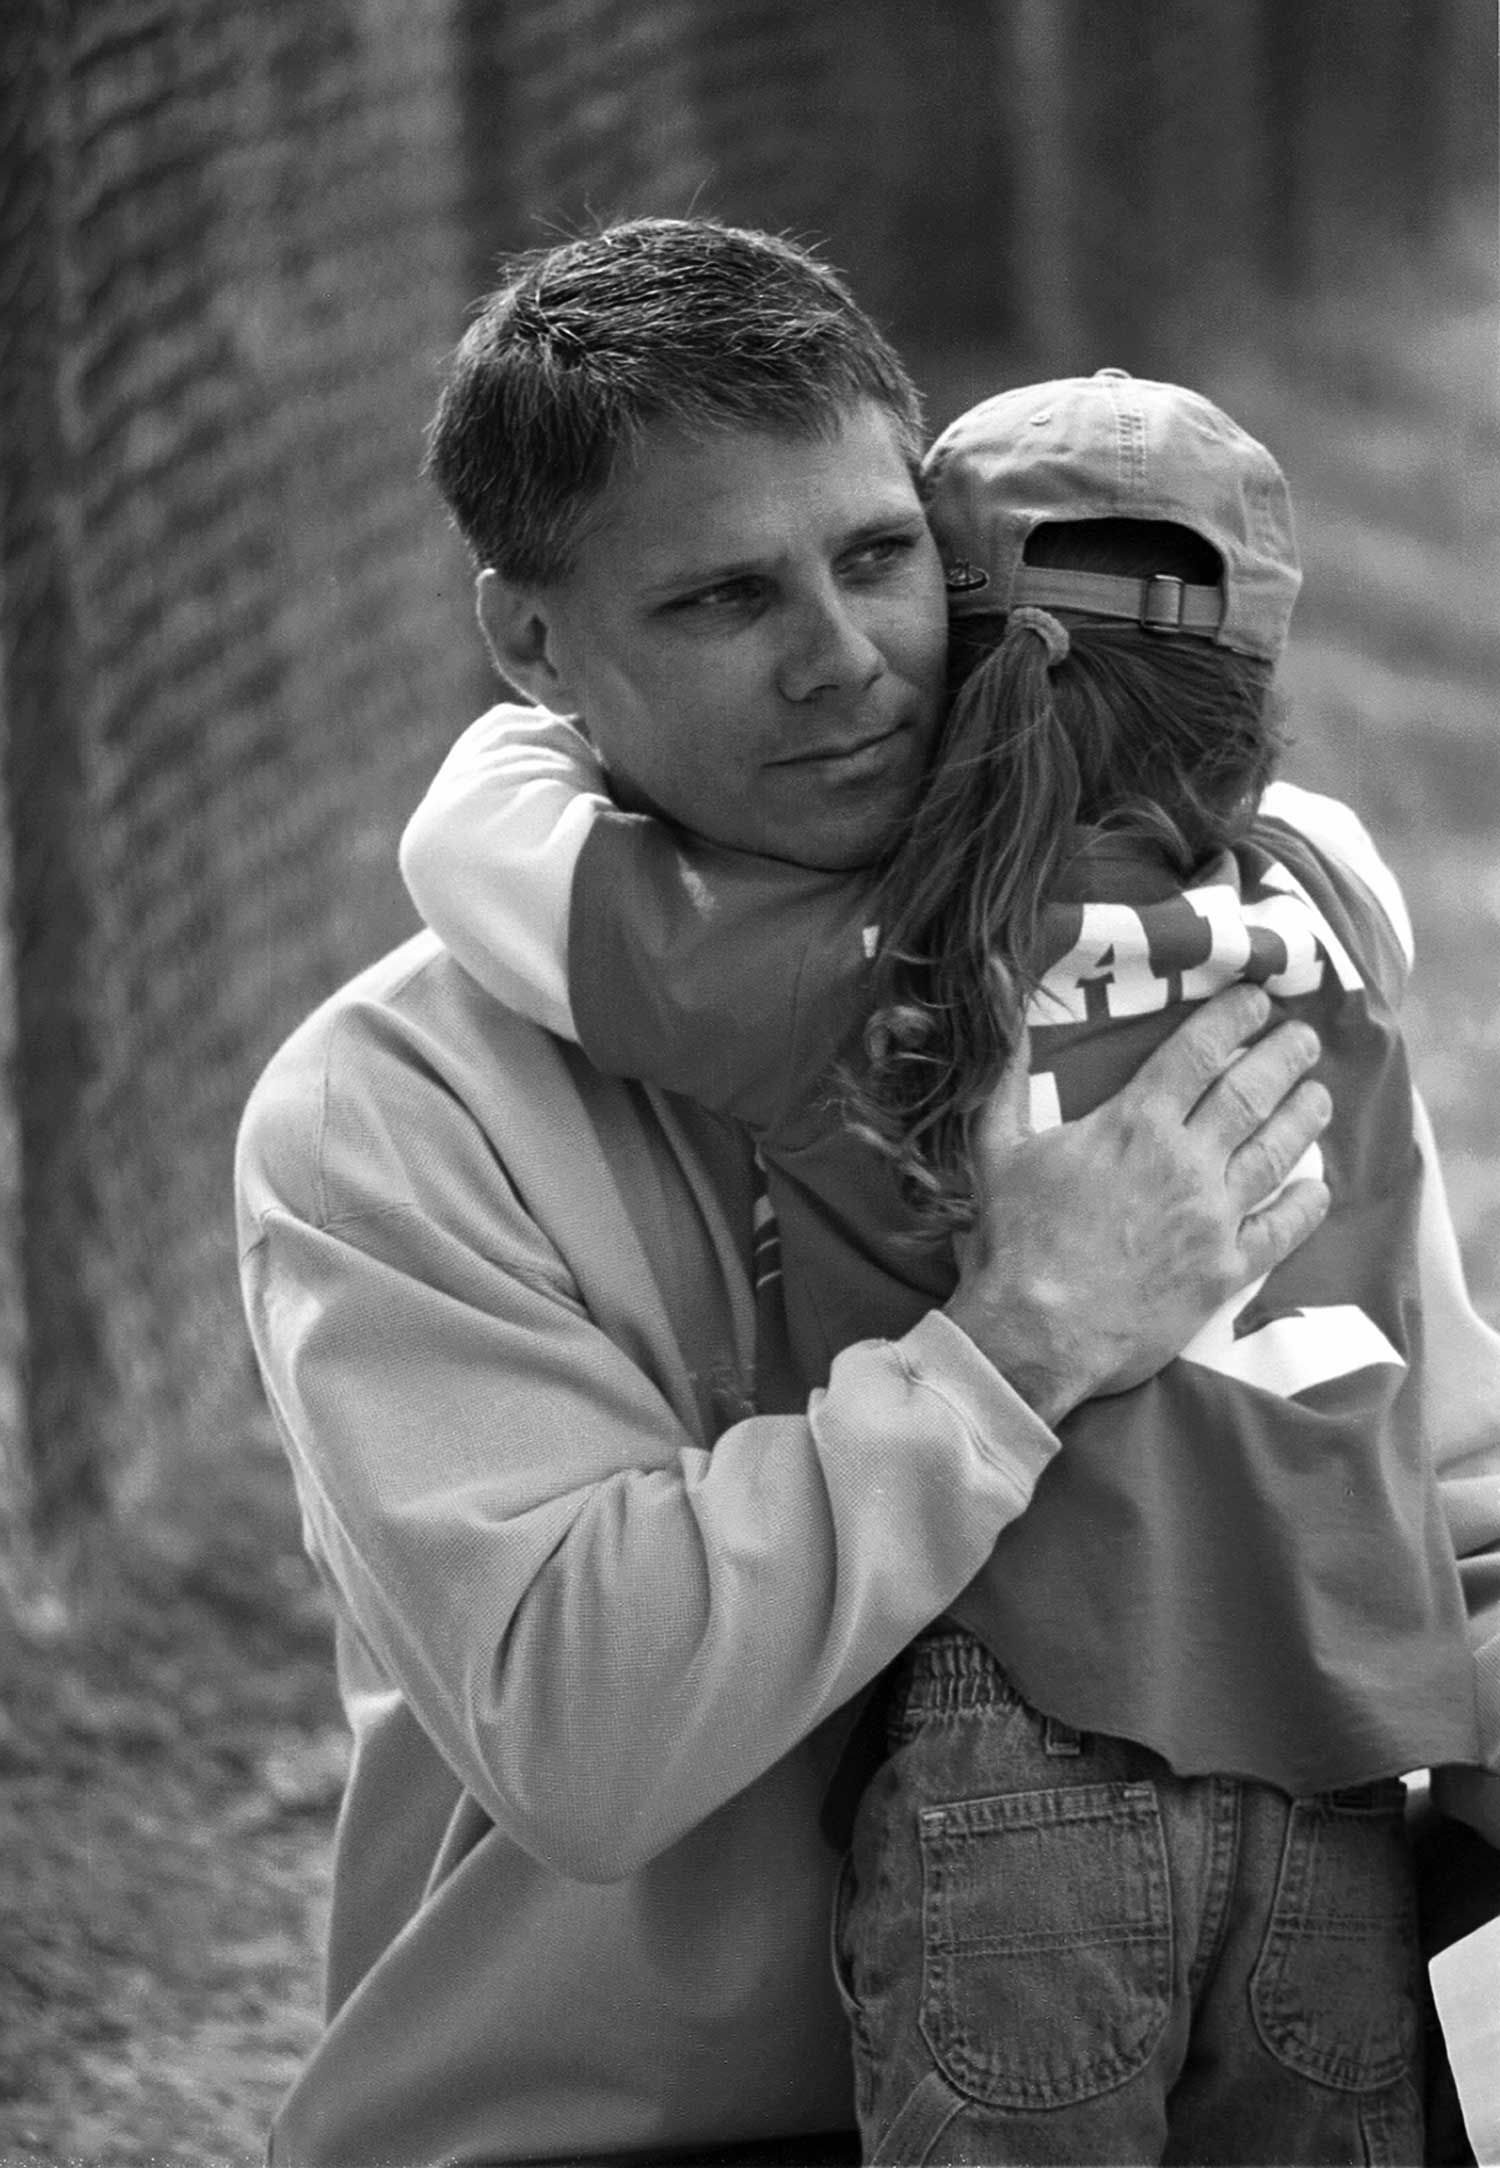 Clint Bane gives his daughter, Brooke, a hug before she goes to bat. photo by Alison Church - 2001